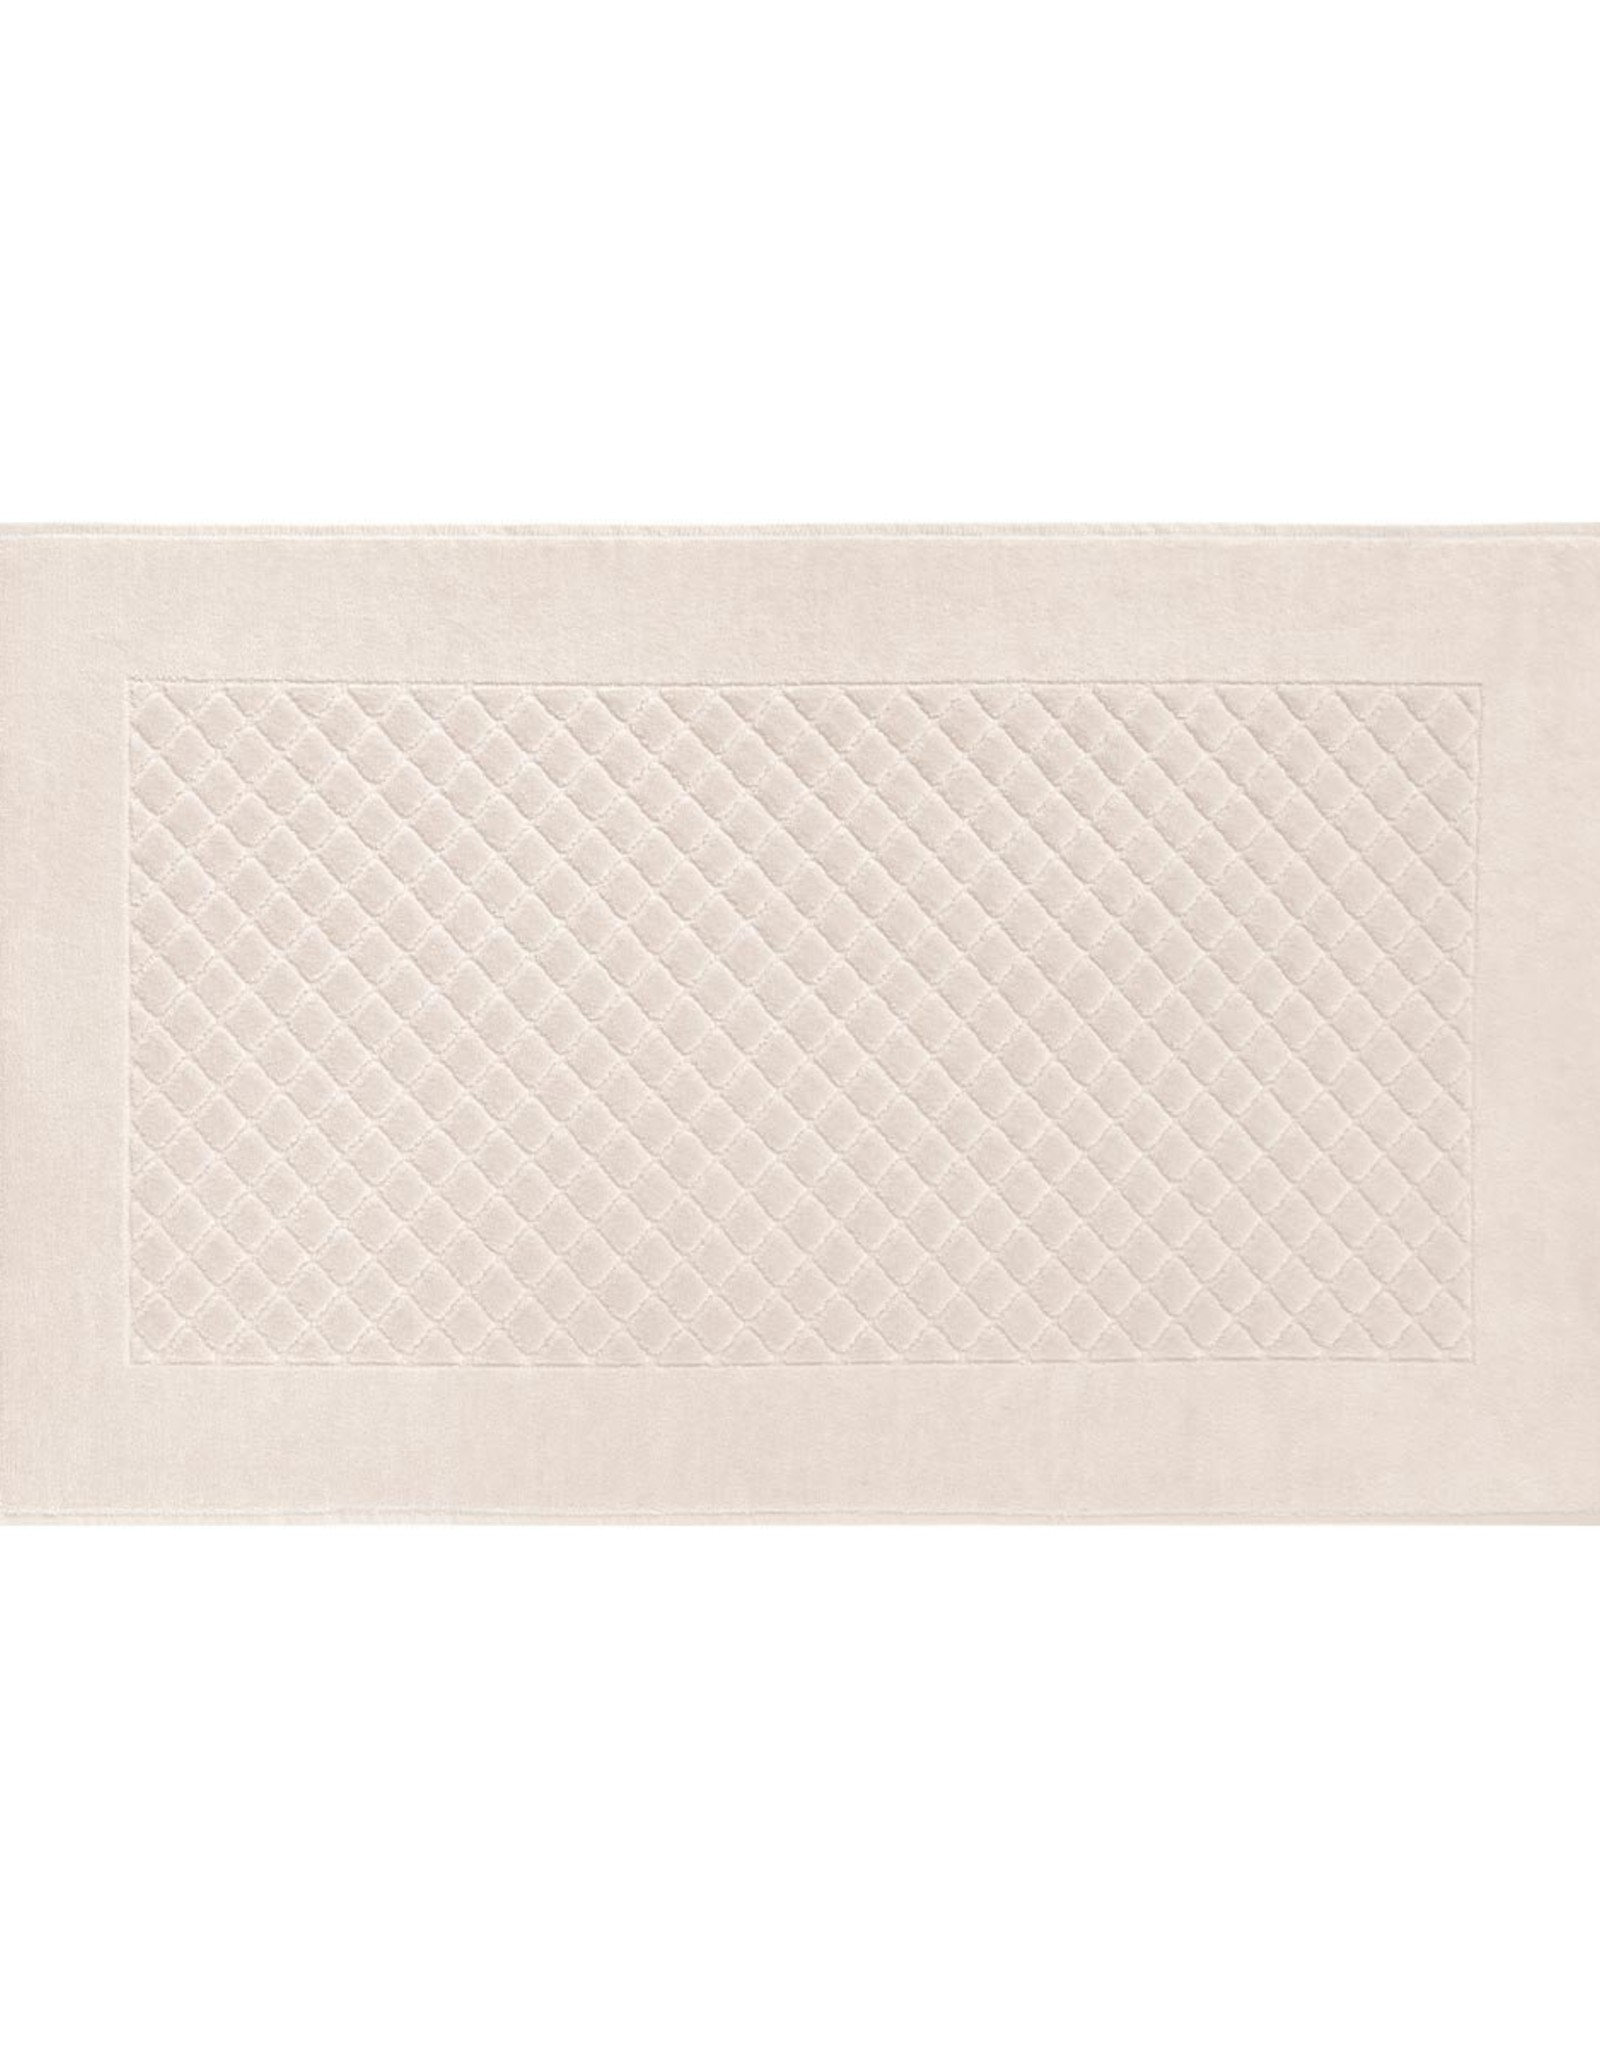 Yves Delorme Etoile Bath Mats by Yves DeLorme